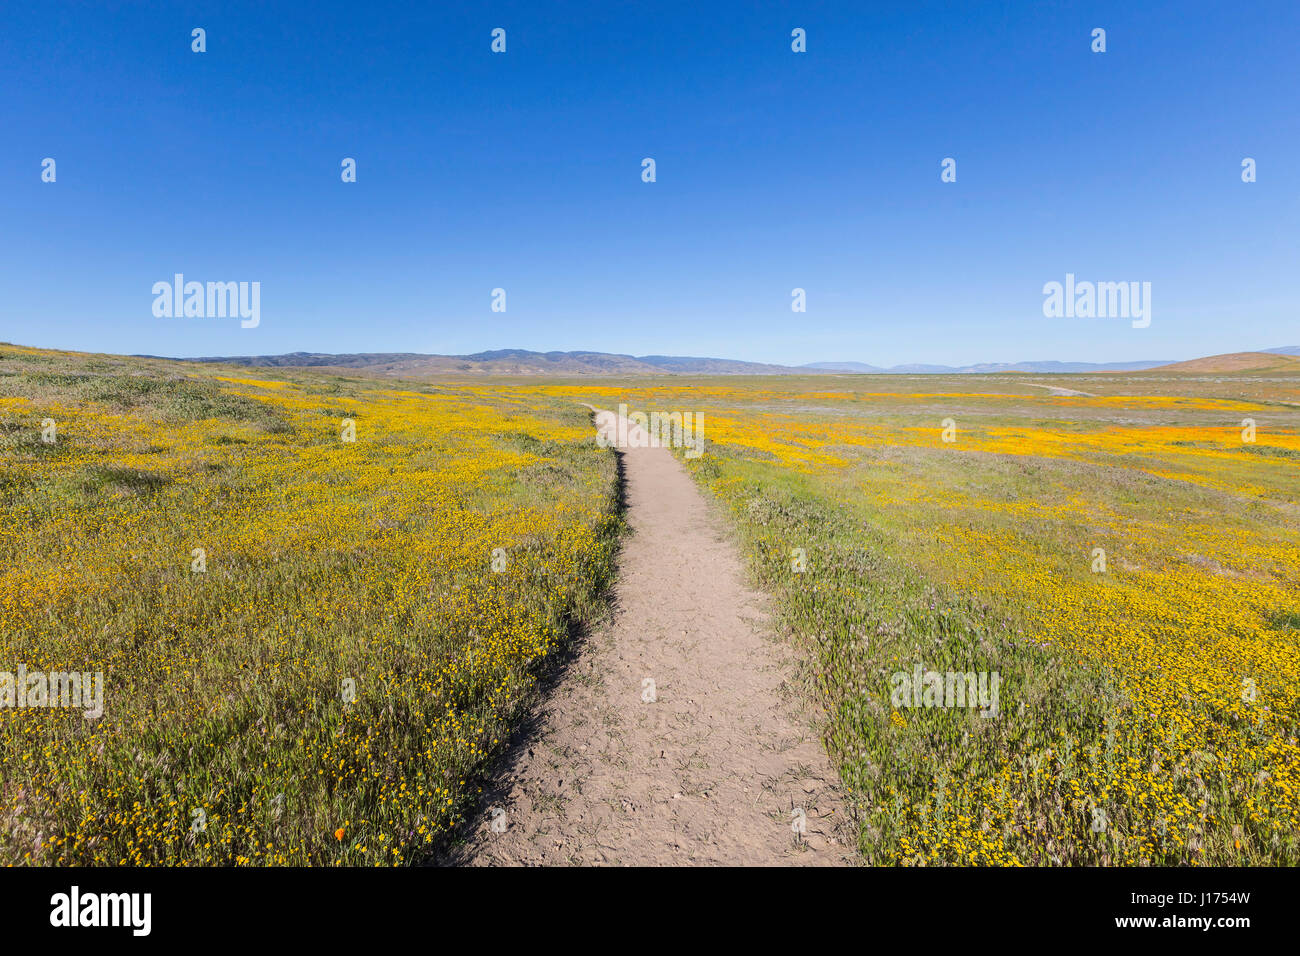 Yellow wildflowers at the Antelope Valley California Poppy Reserve State Park. - Stock Image